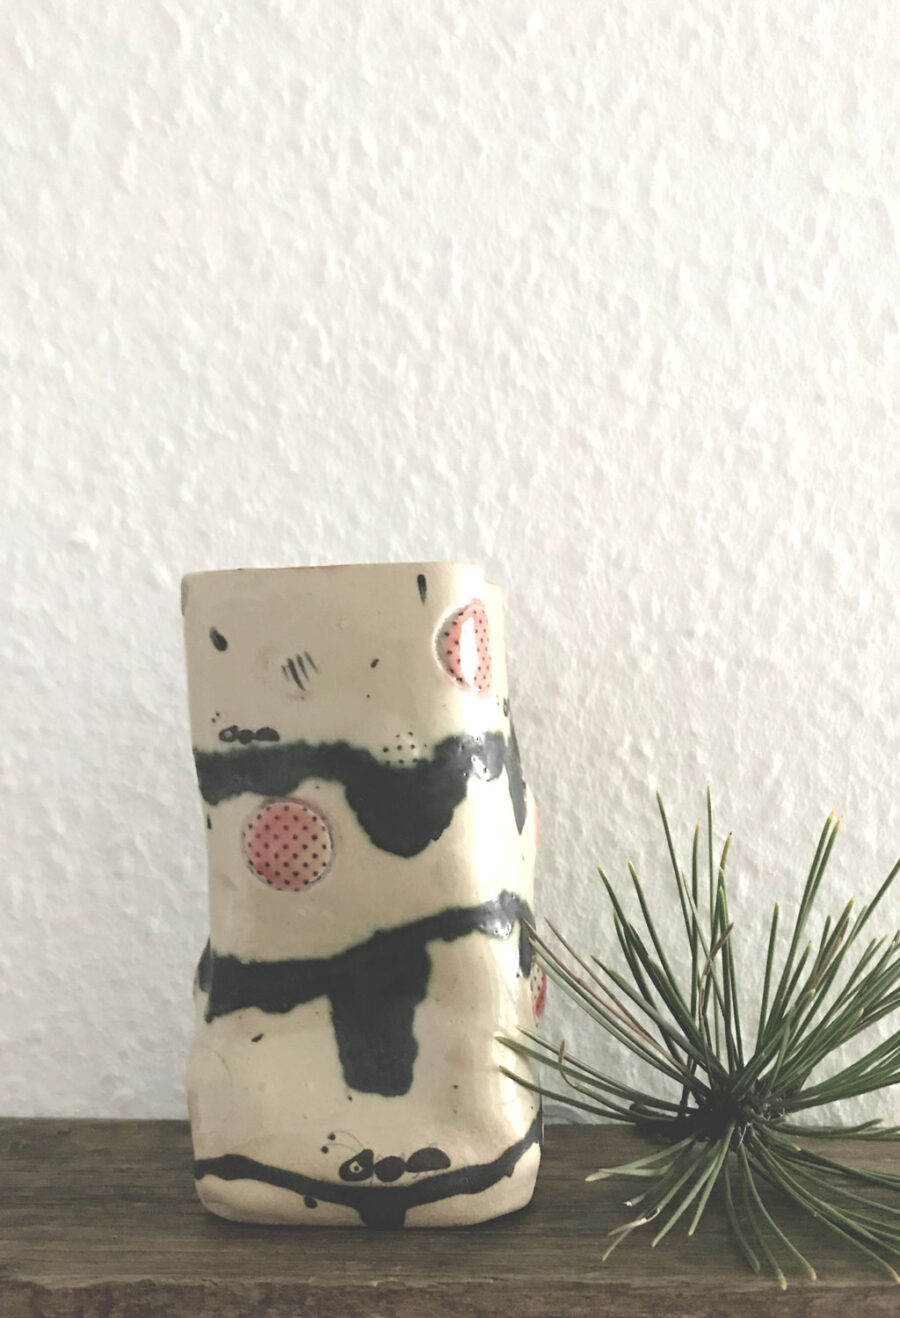 vase-ameisenstraße-my-deer-illustrated-ceramics